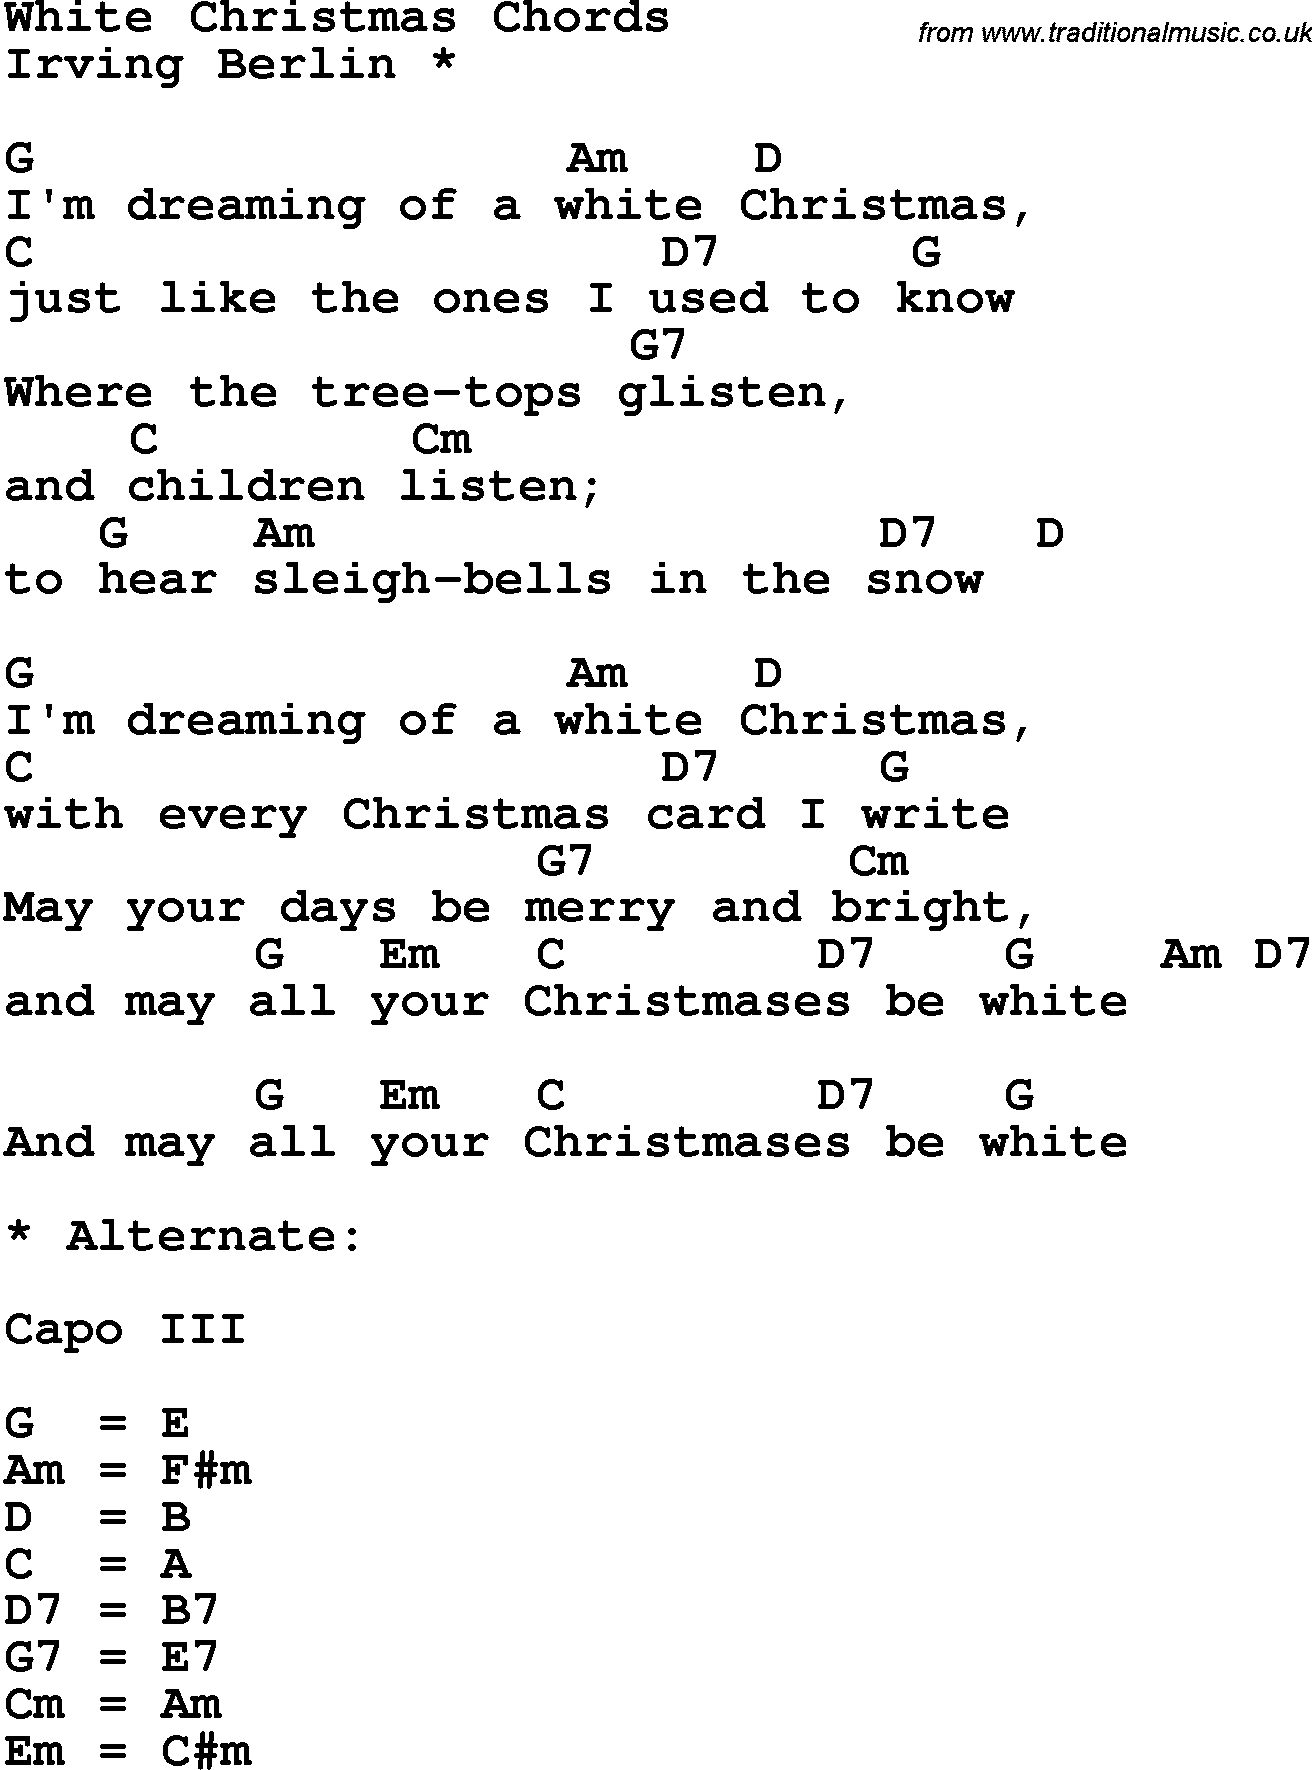 Blue Christmas Chords White Christmas Chords 2015confession